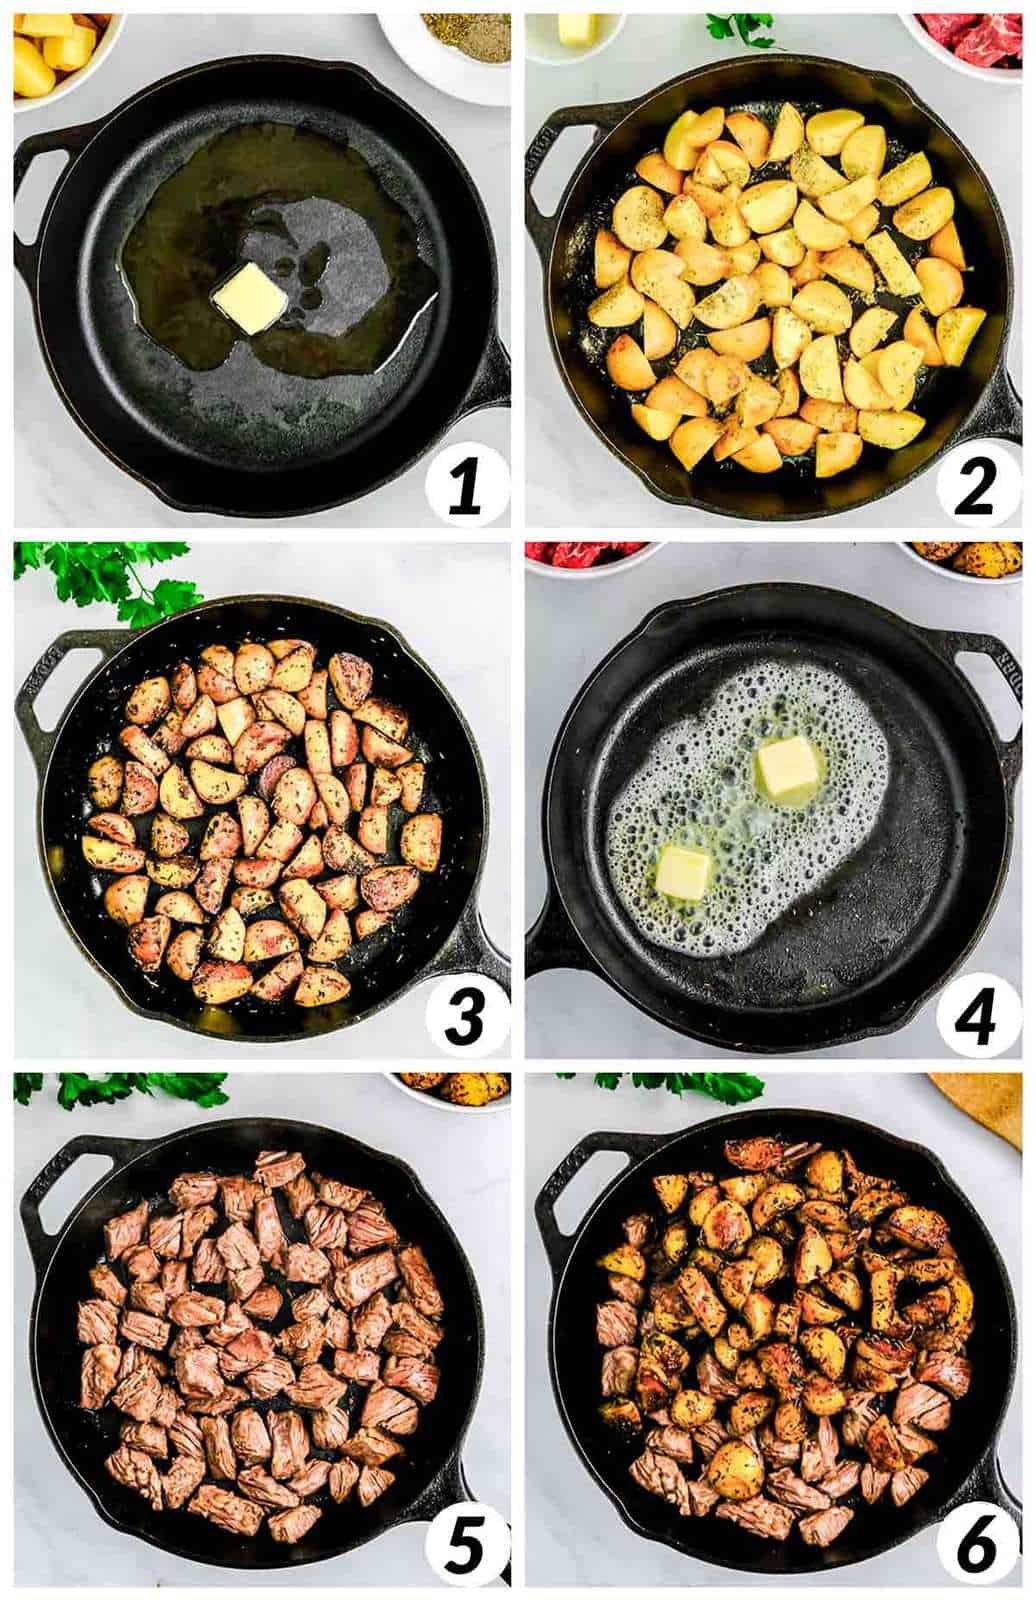 Collage with 6 steps for making the steak bites with potatoes in garlic and butter.